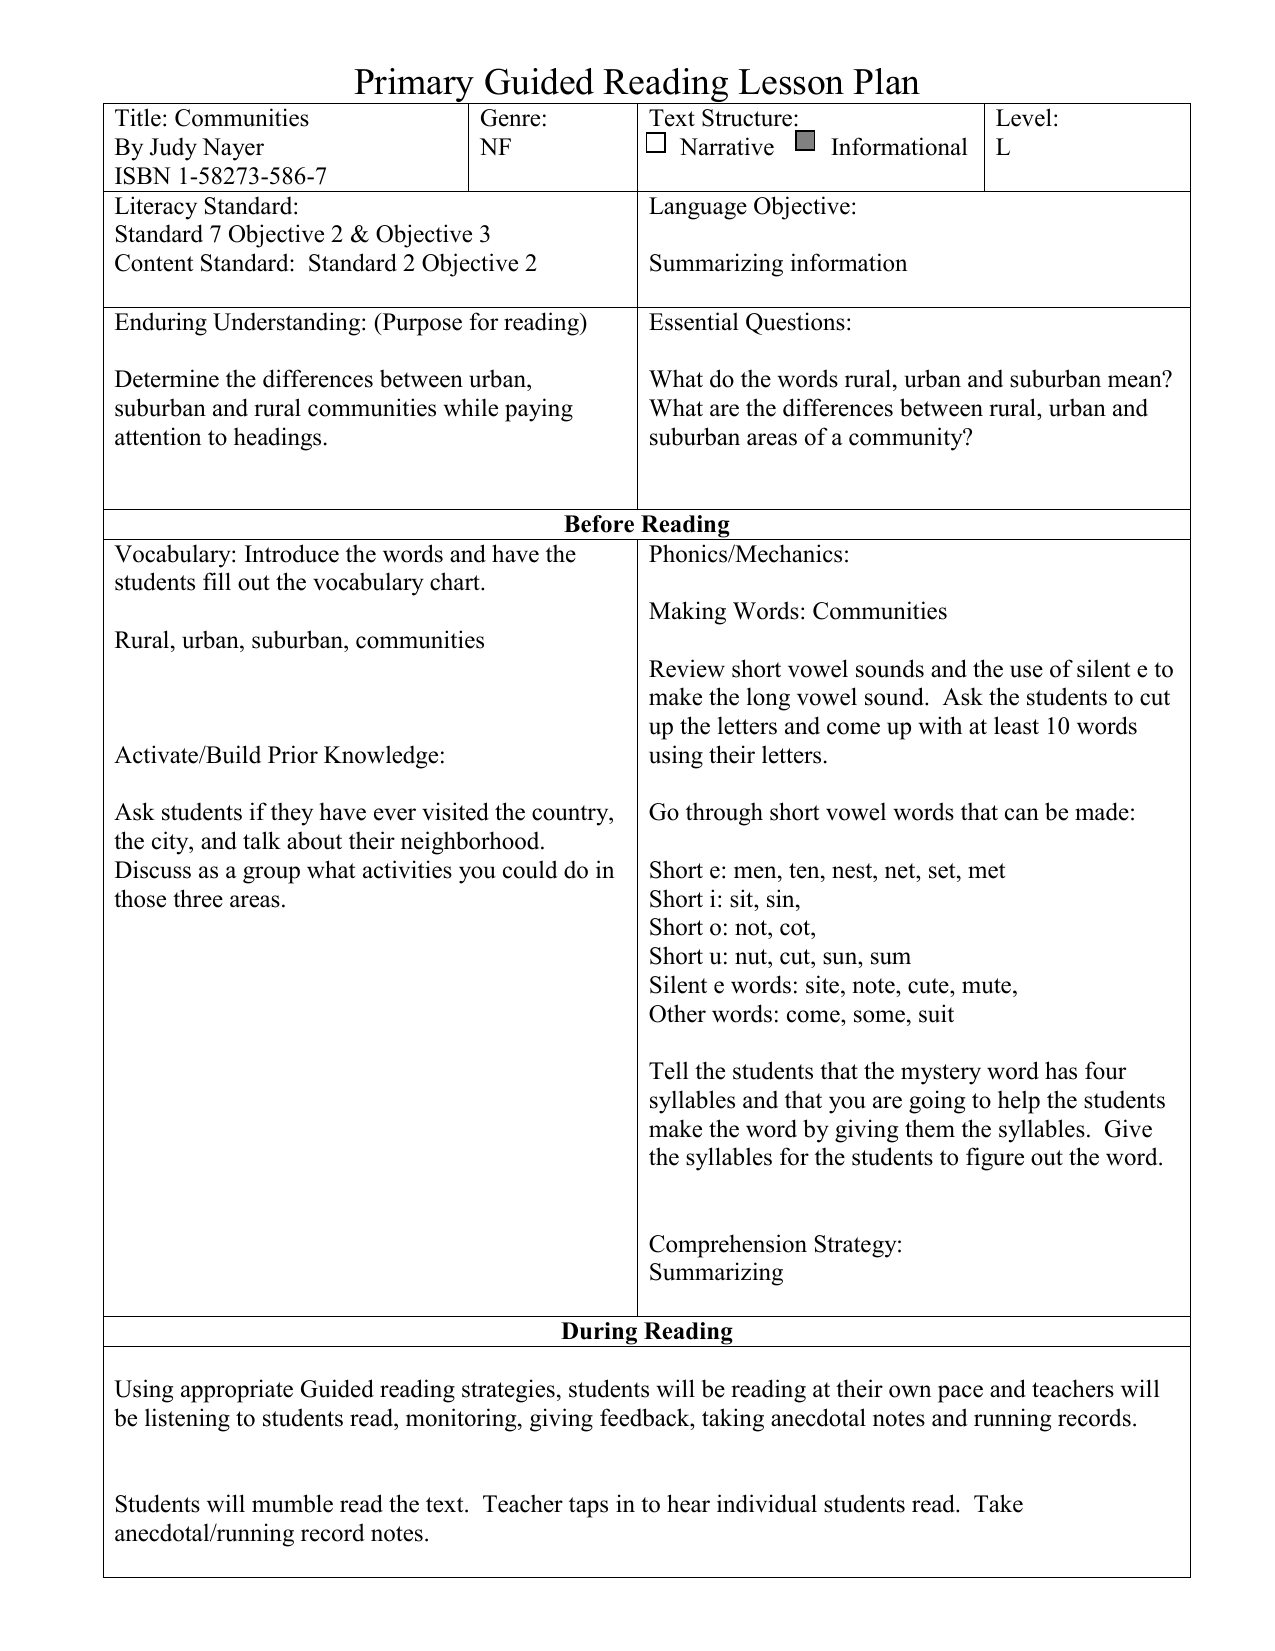 Primary Guided Reading Lesson Plan